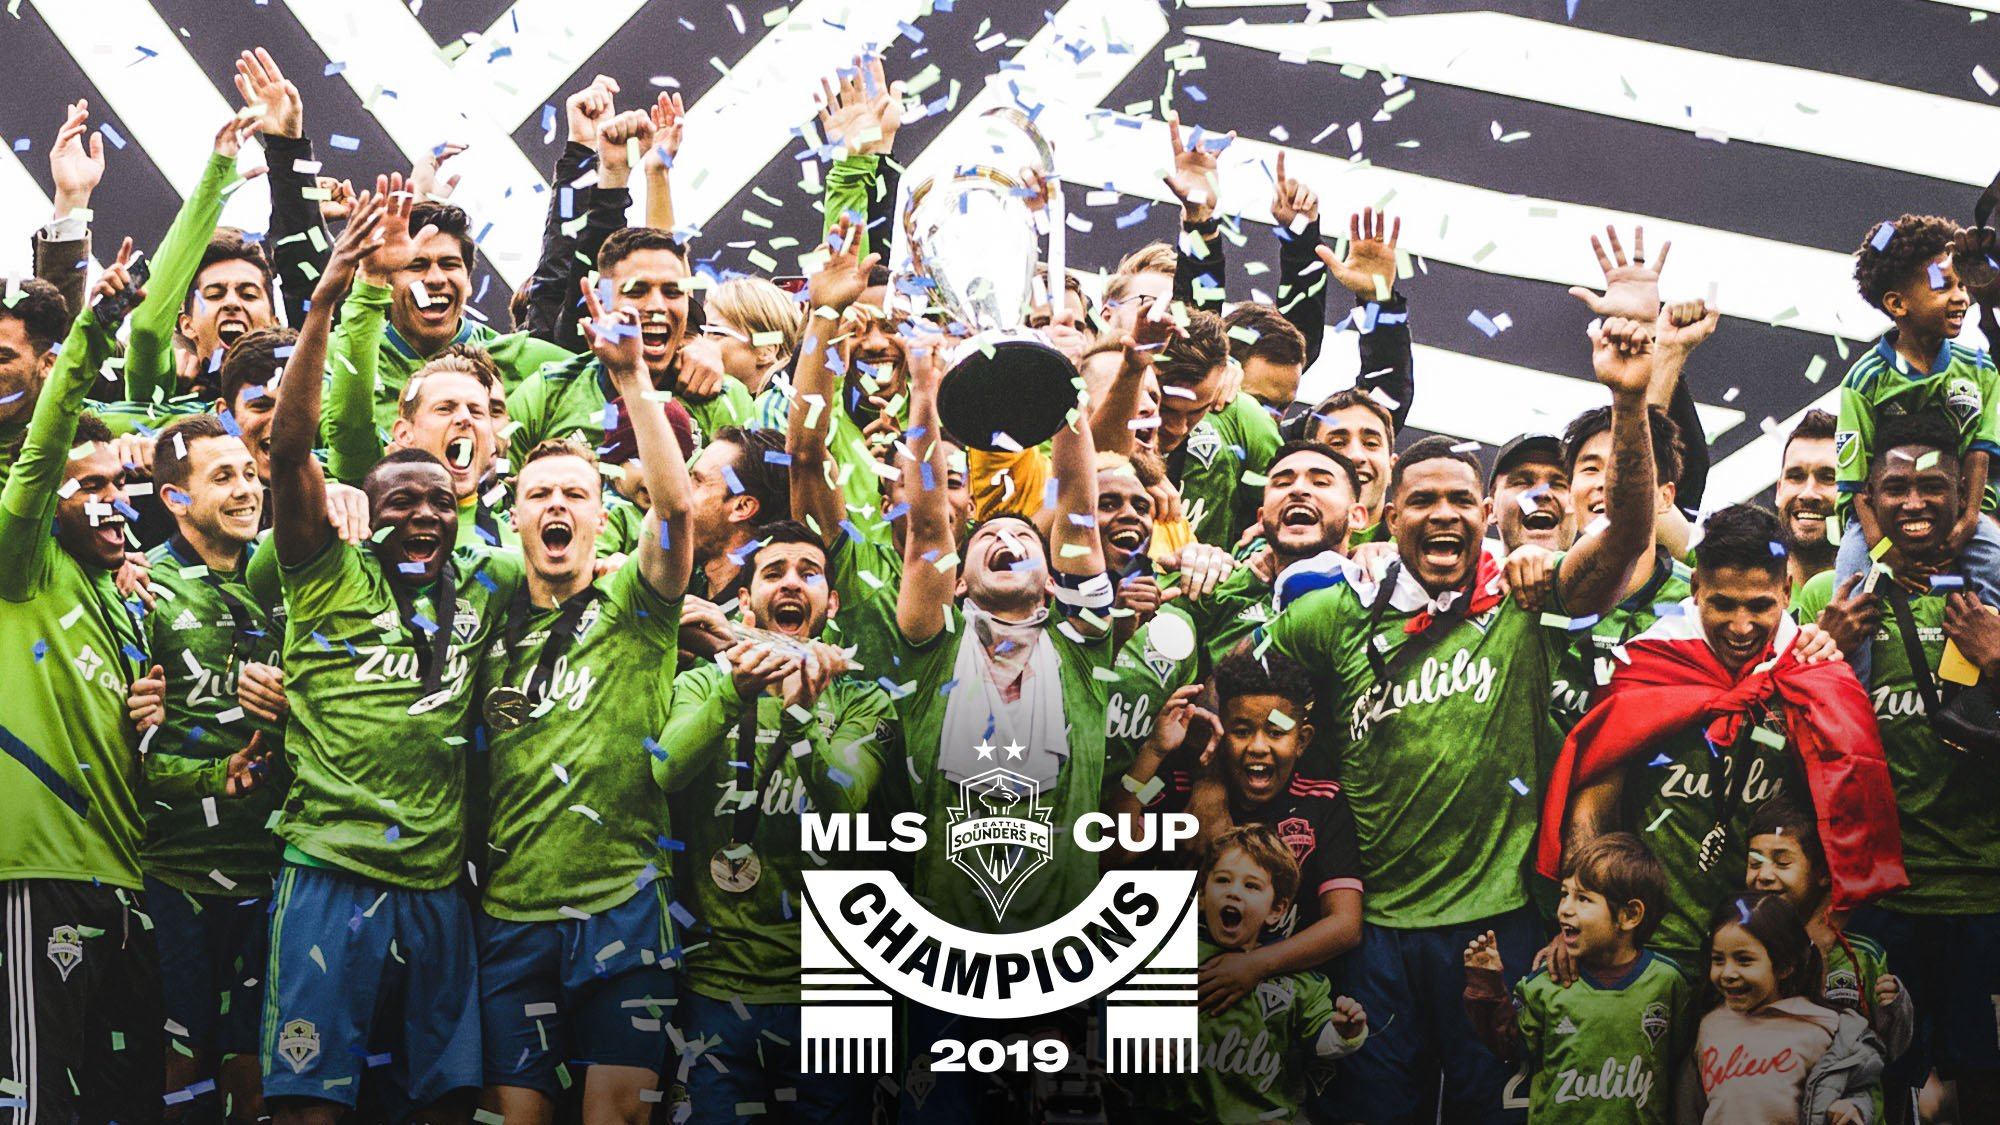 Sounders champs